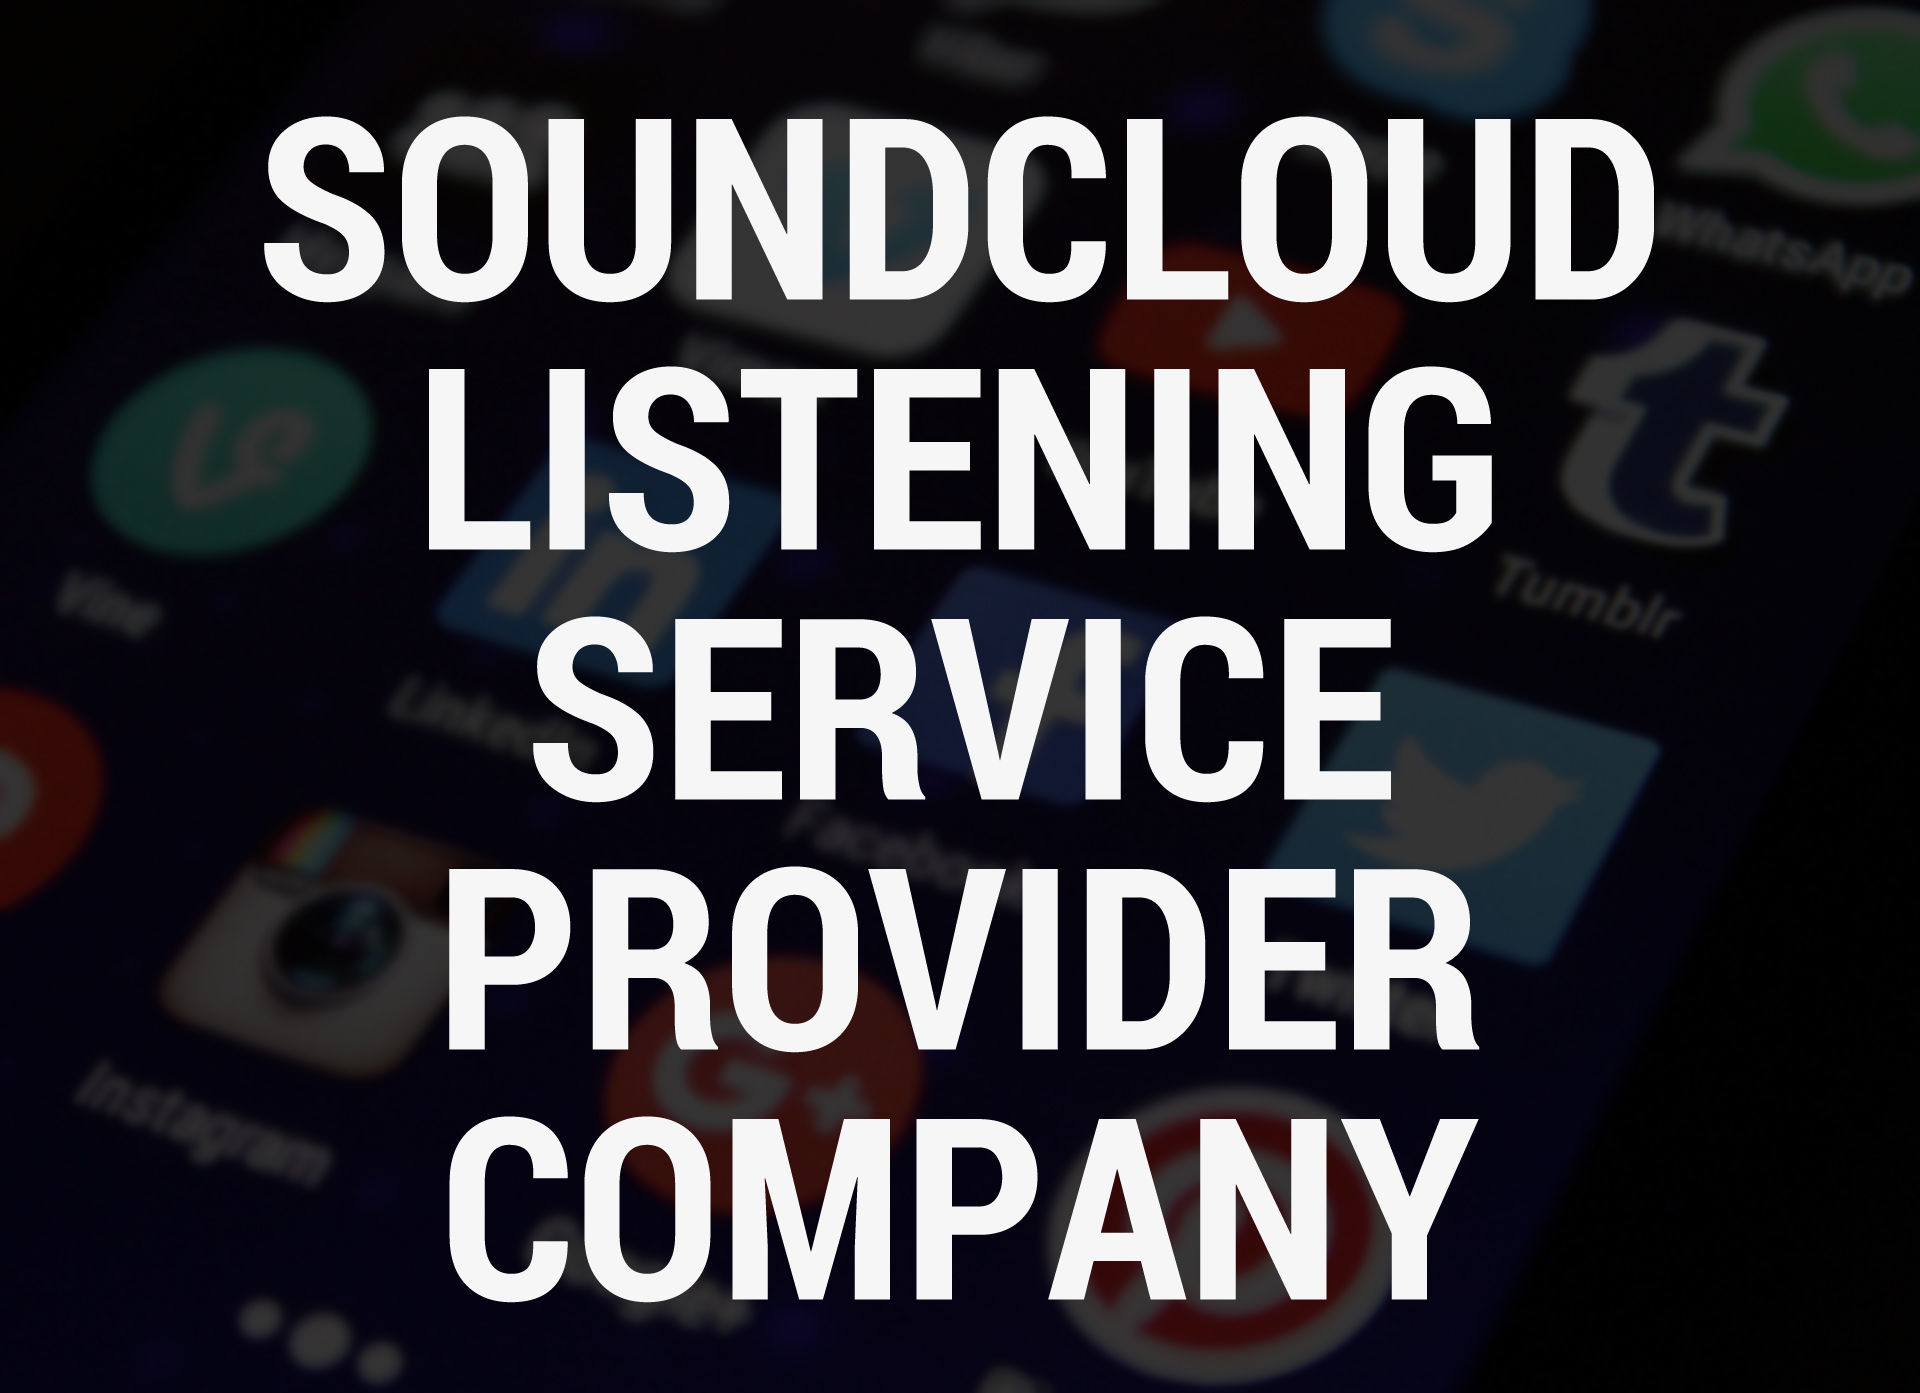 Soundcloud Listening Service